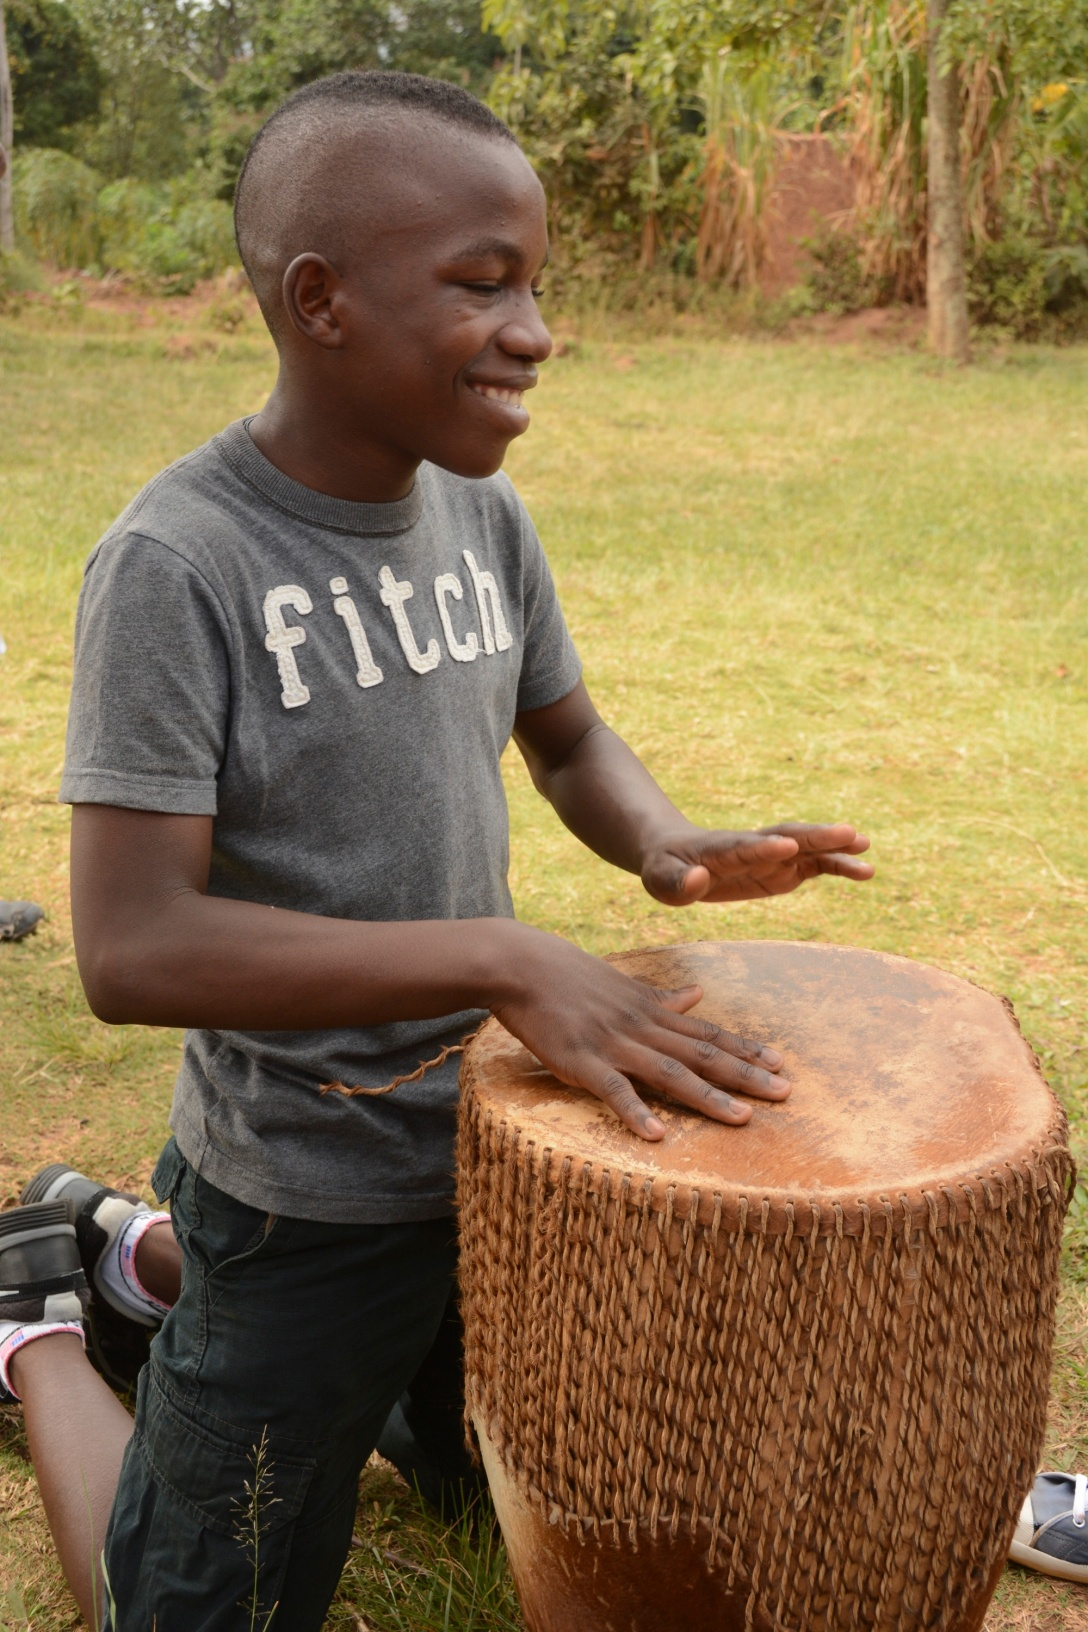 ronald was so happy when we brought a drum home for the family devotionals